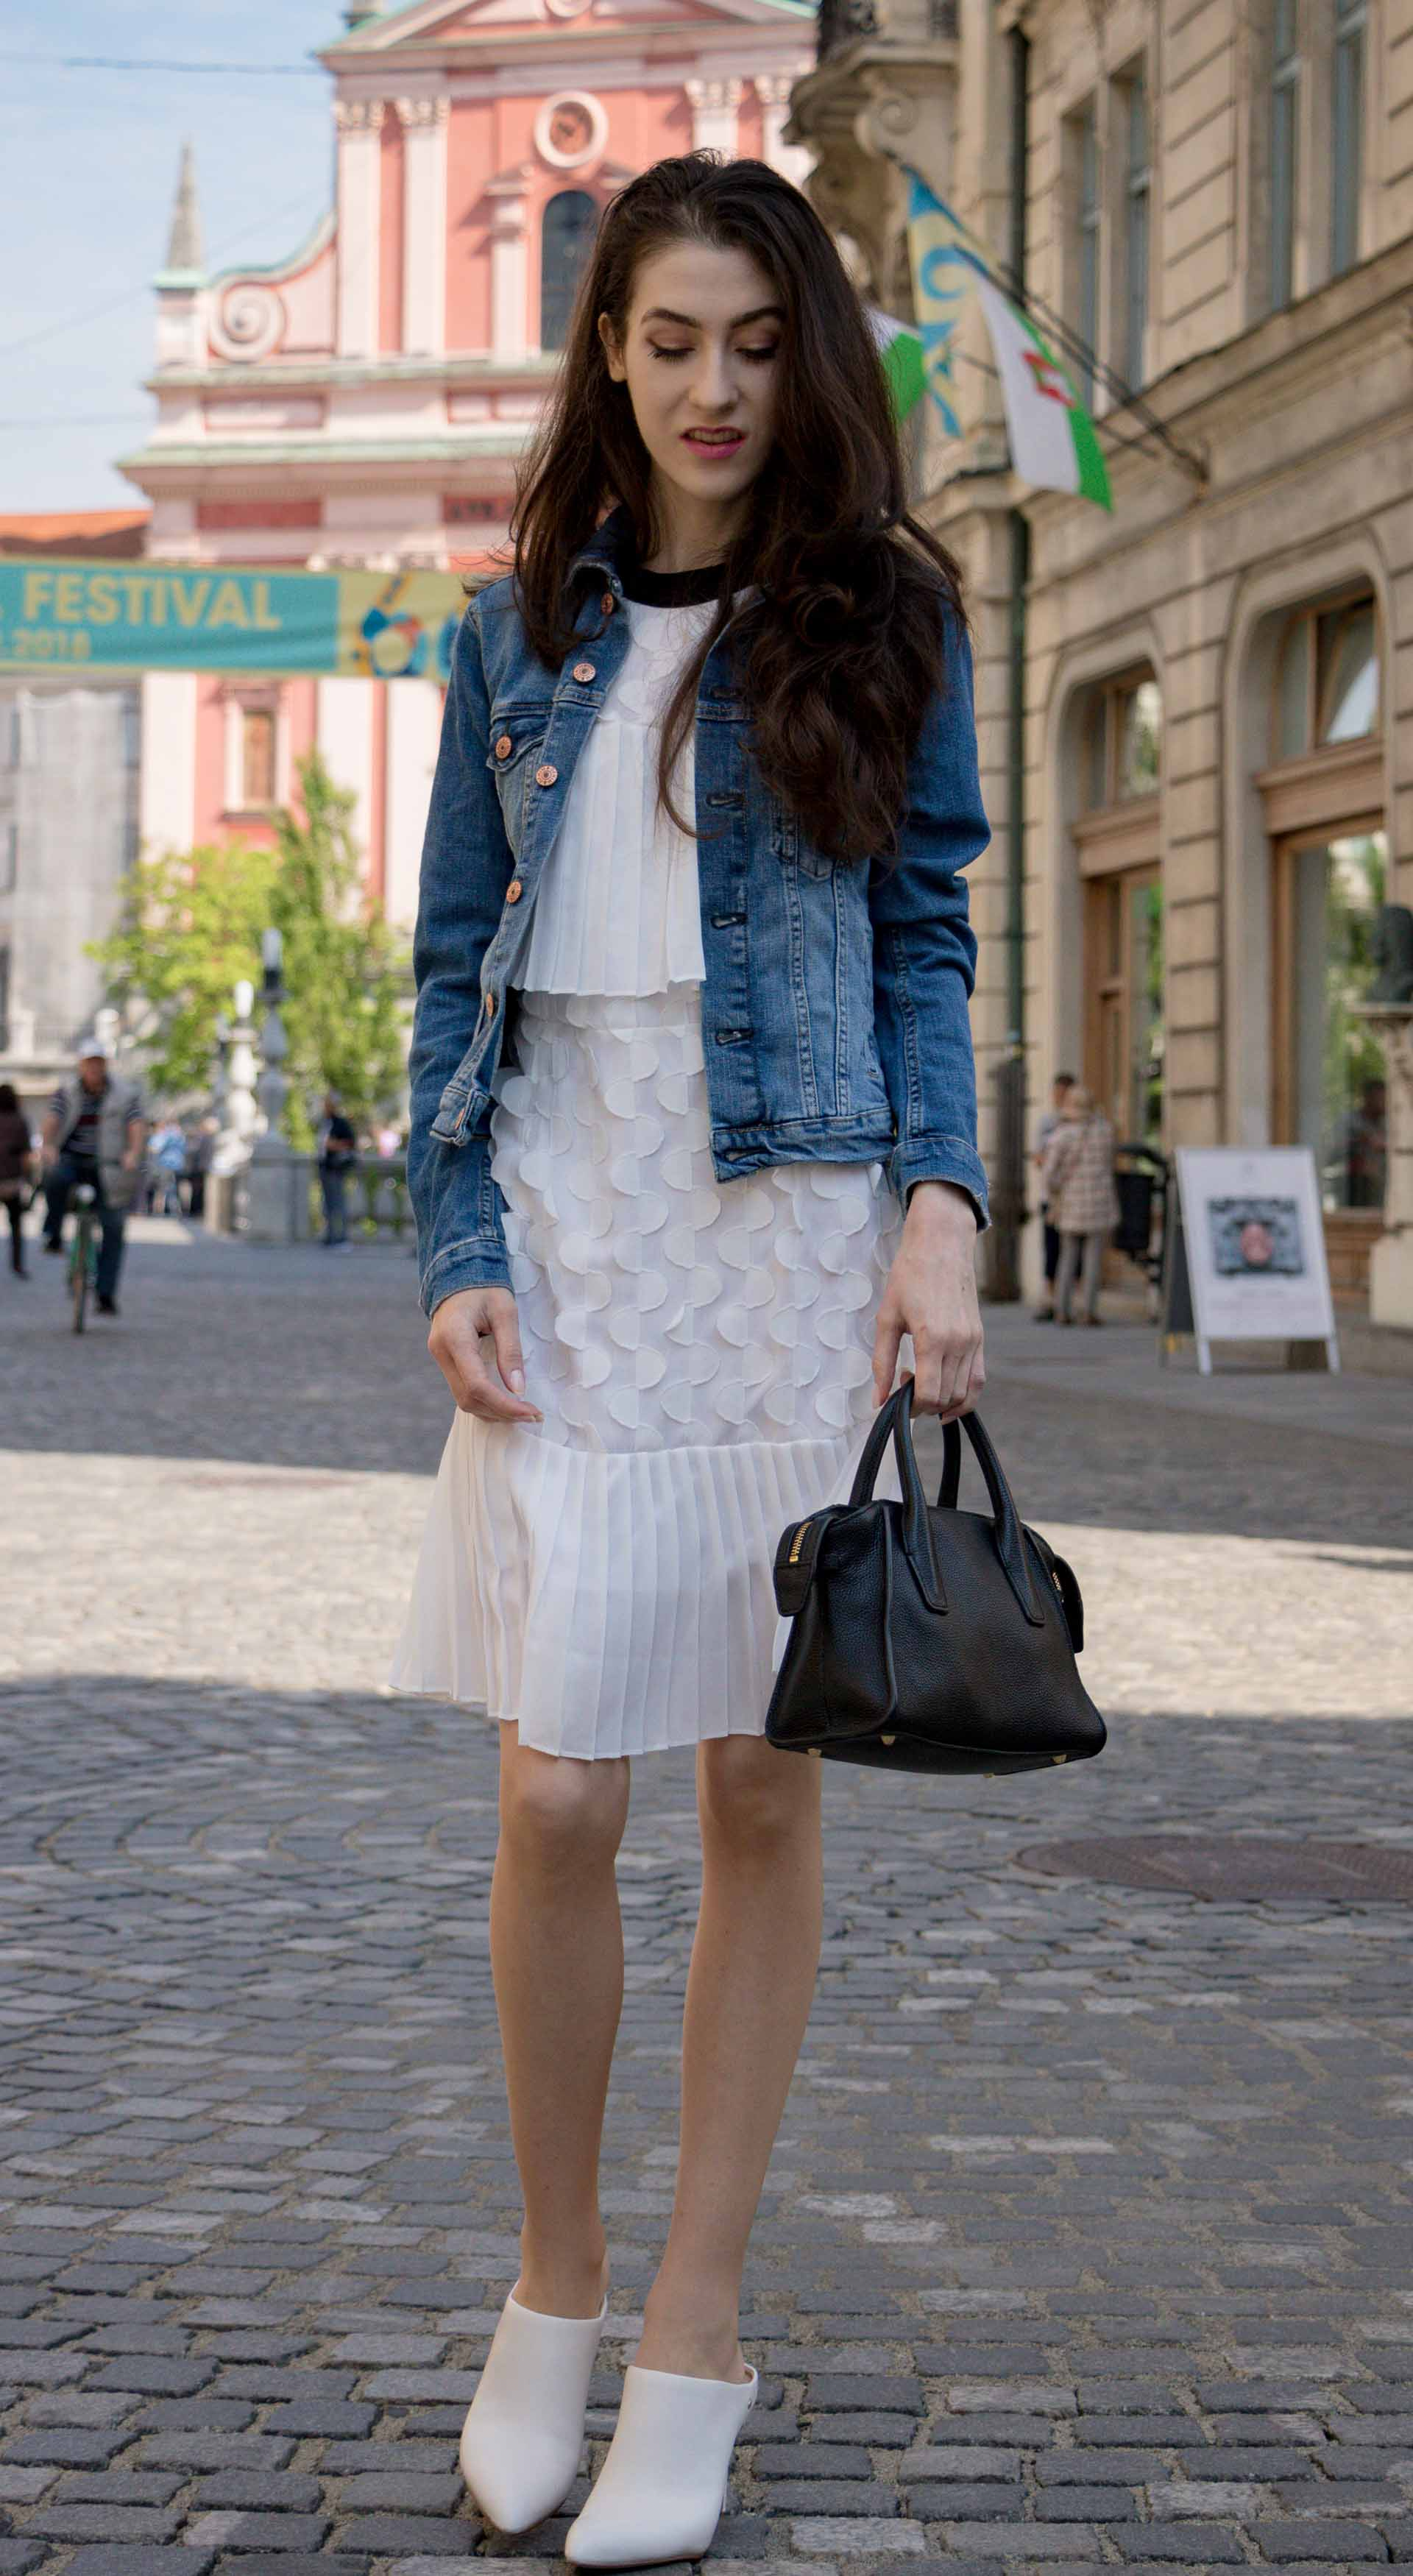 Veronika Lipar Fashion Editor of Brunette from Wall Street dressed in H&M blue denim jacket, Storets white pleated short dress, white mules and Adam Selman x Le Specs white cat eye Lolita sunglasses, black small bag standing on the street in Ljubljana